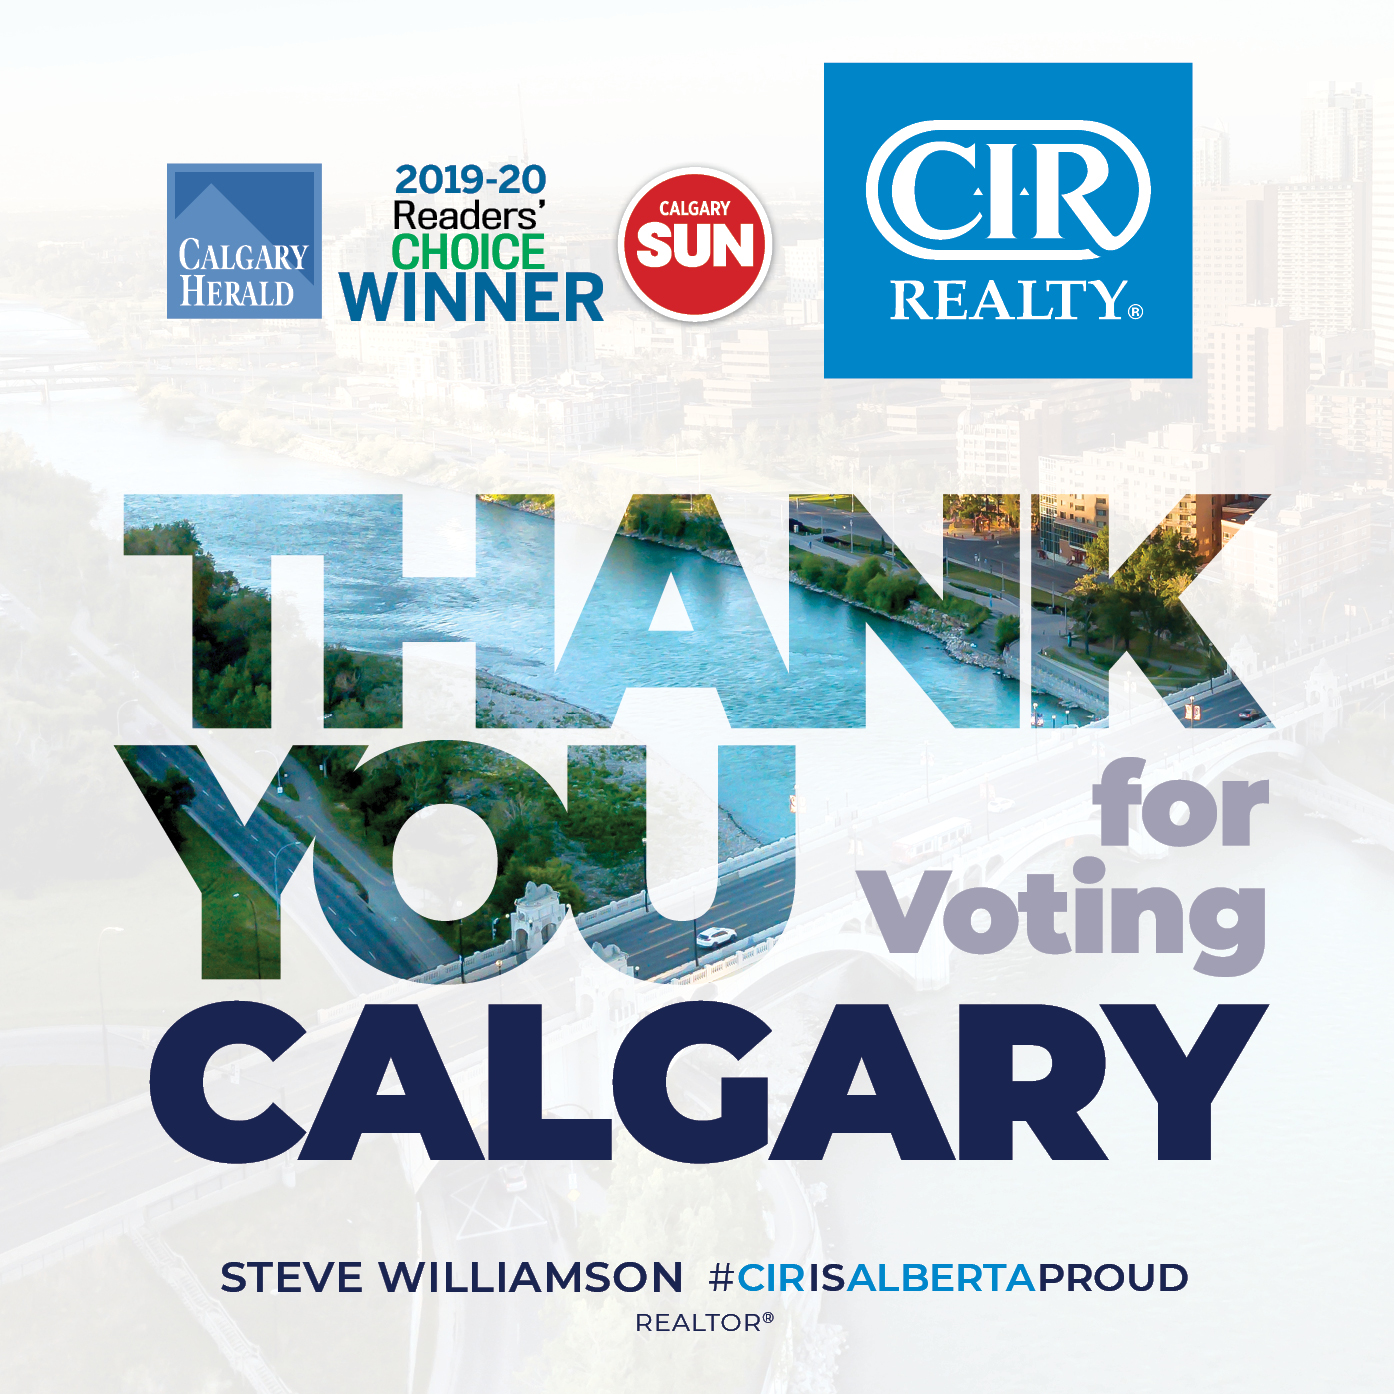 2019-2020 Calgary Herald Readers Choice Winner